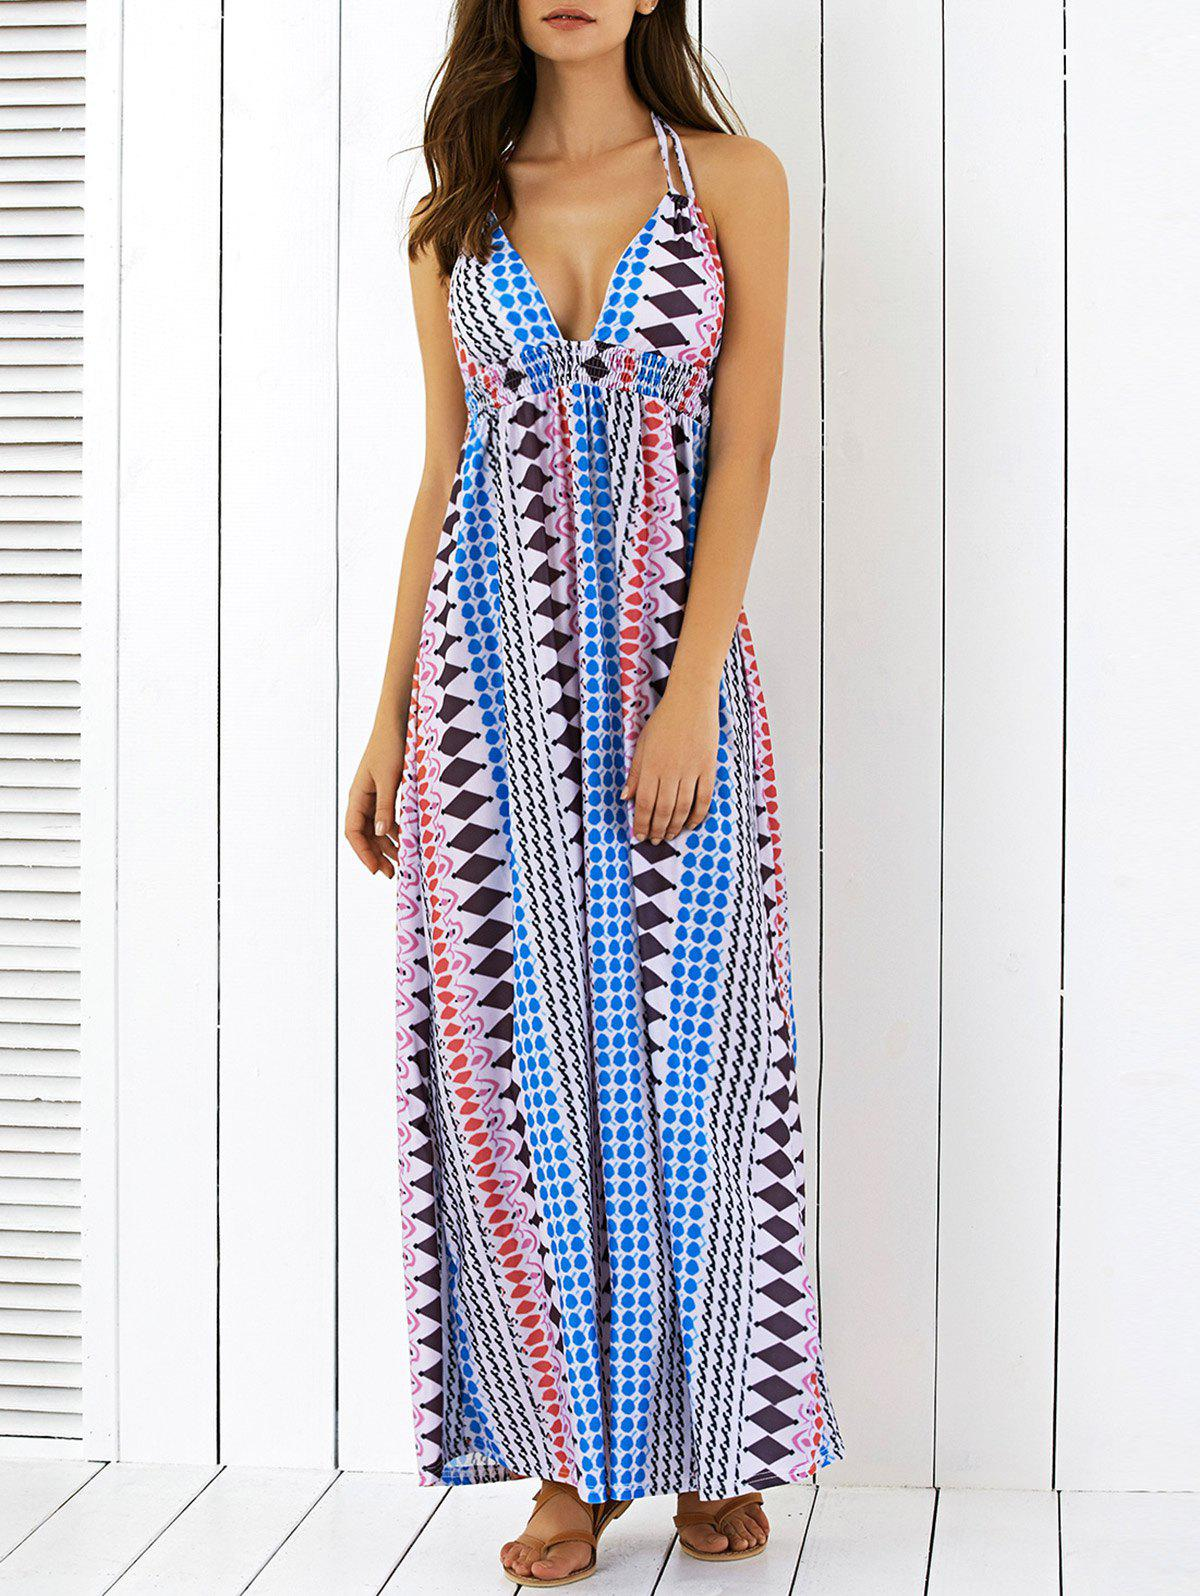 Geometric Print High Waist Halter Maxi Dress - COLORMIX XL